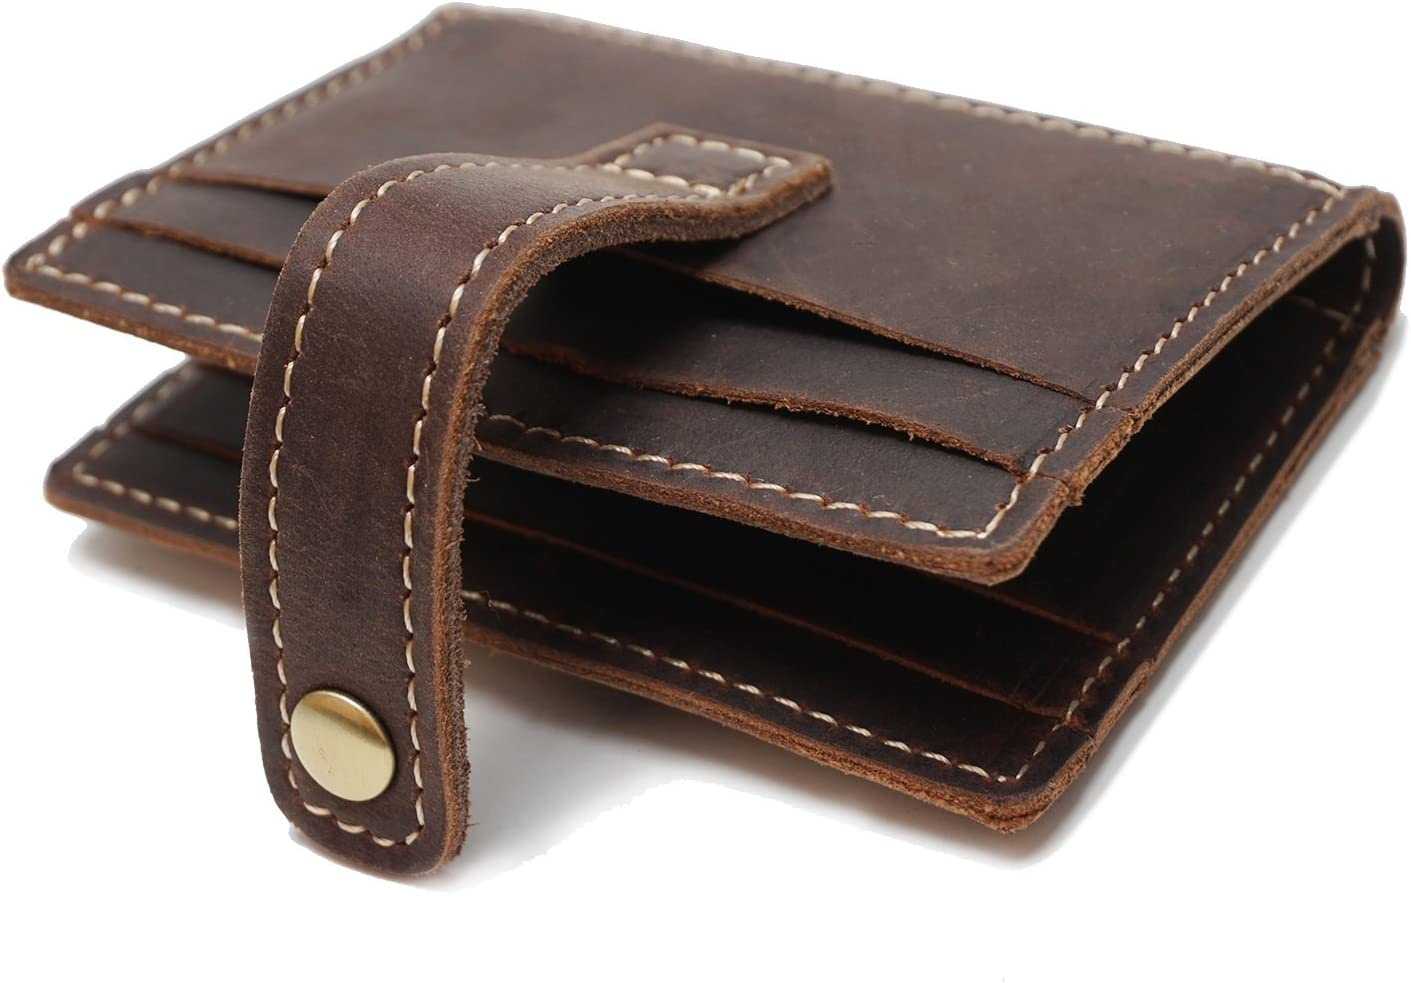 HAOXIONG-ZHANG Hardheaded Short-Sleeved Card Package Wave Softheaded Horse Leather Multi-Card Card Package Man and Women Mens Bag Color : Brown, Size : S